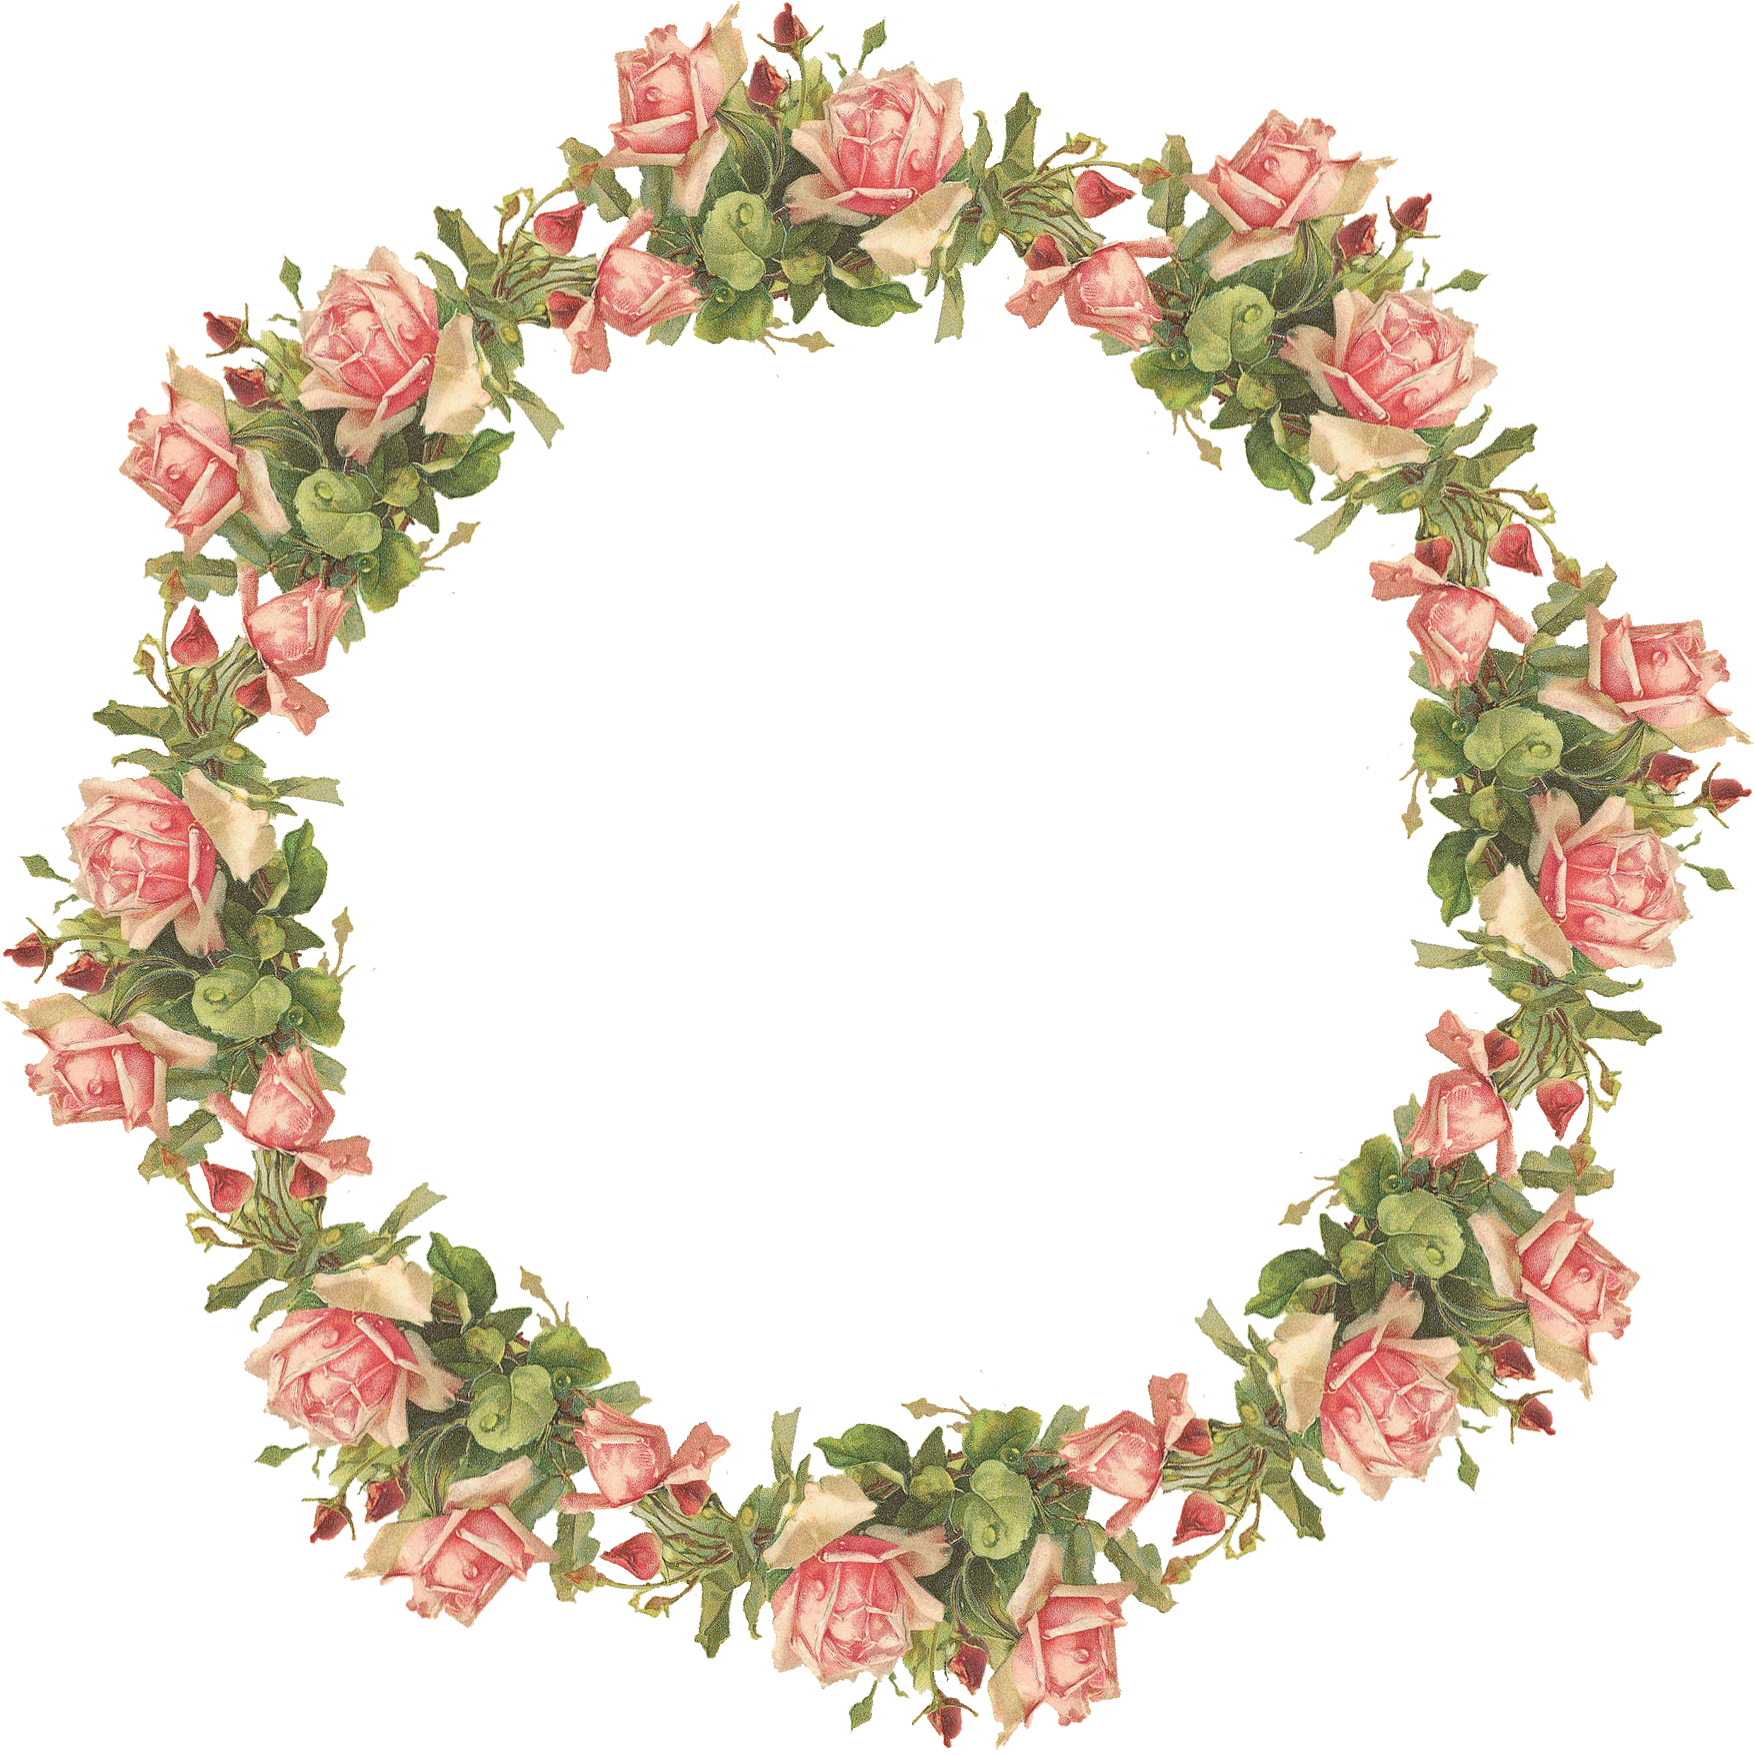 Catherine klein pink roses. Vintage flower frame png graphic library library